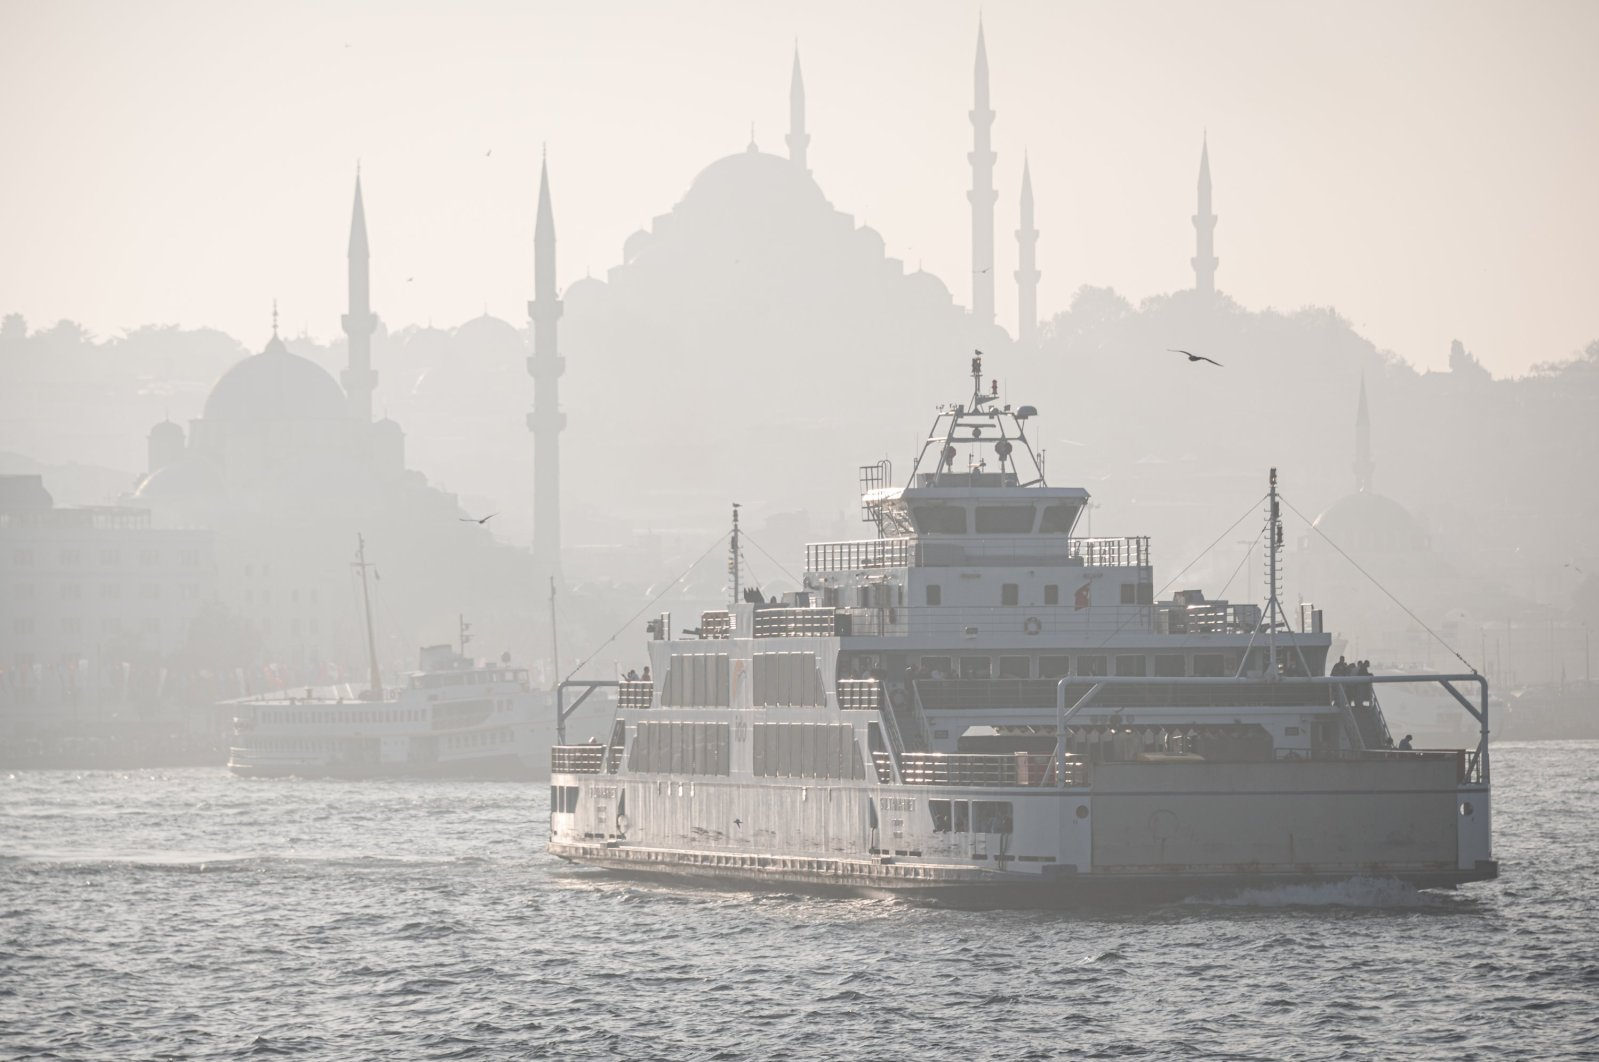 A ferry navigates the Golden Horn amid low visibility caused by air pollution in Istanbul, Turkey, Oct. 24, 2020. (Photo by Getty Images)